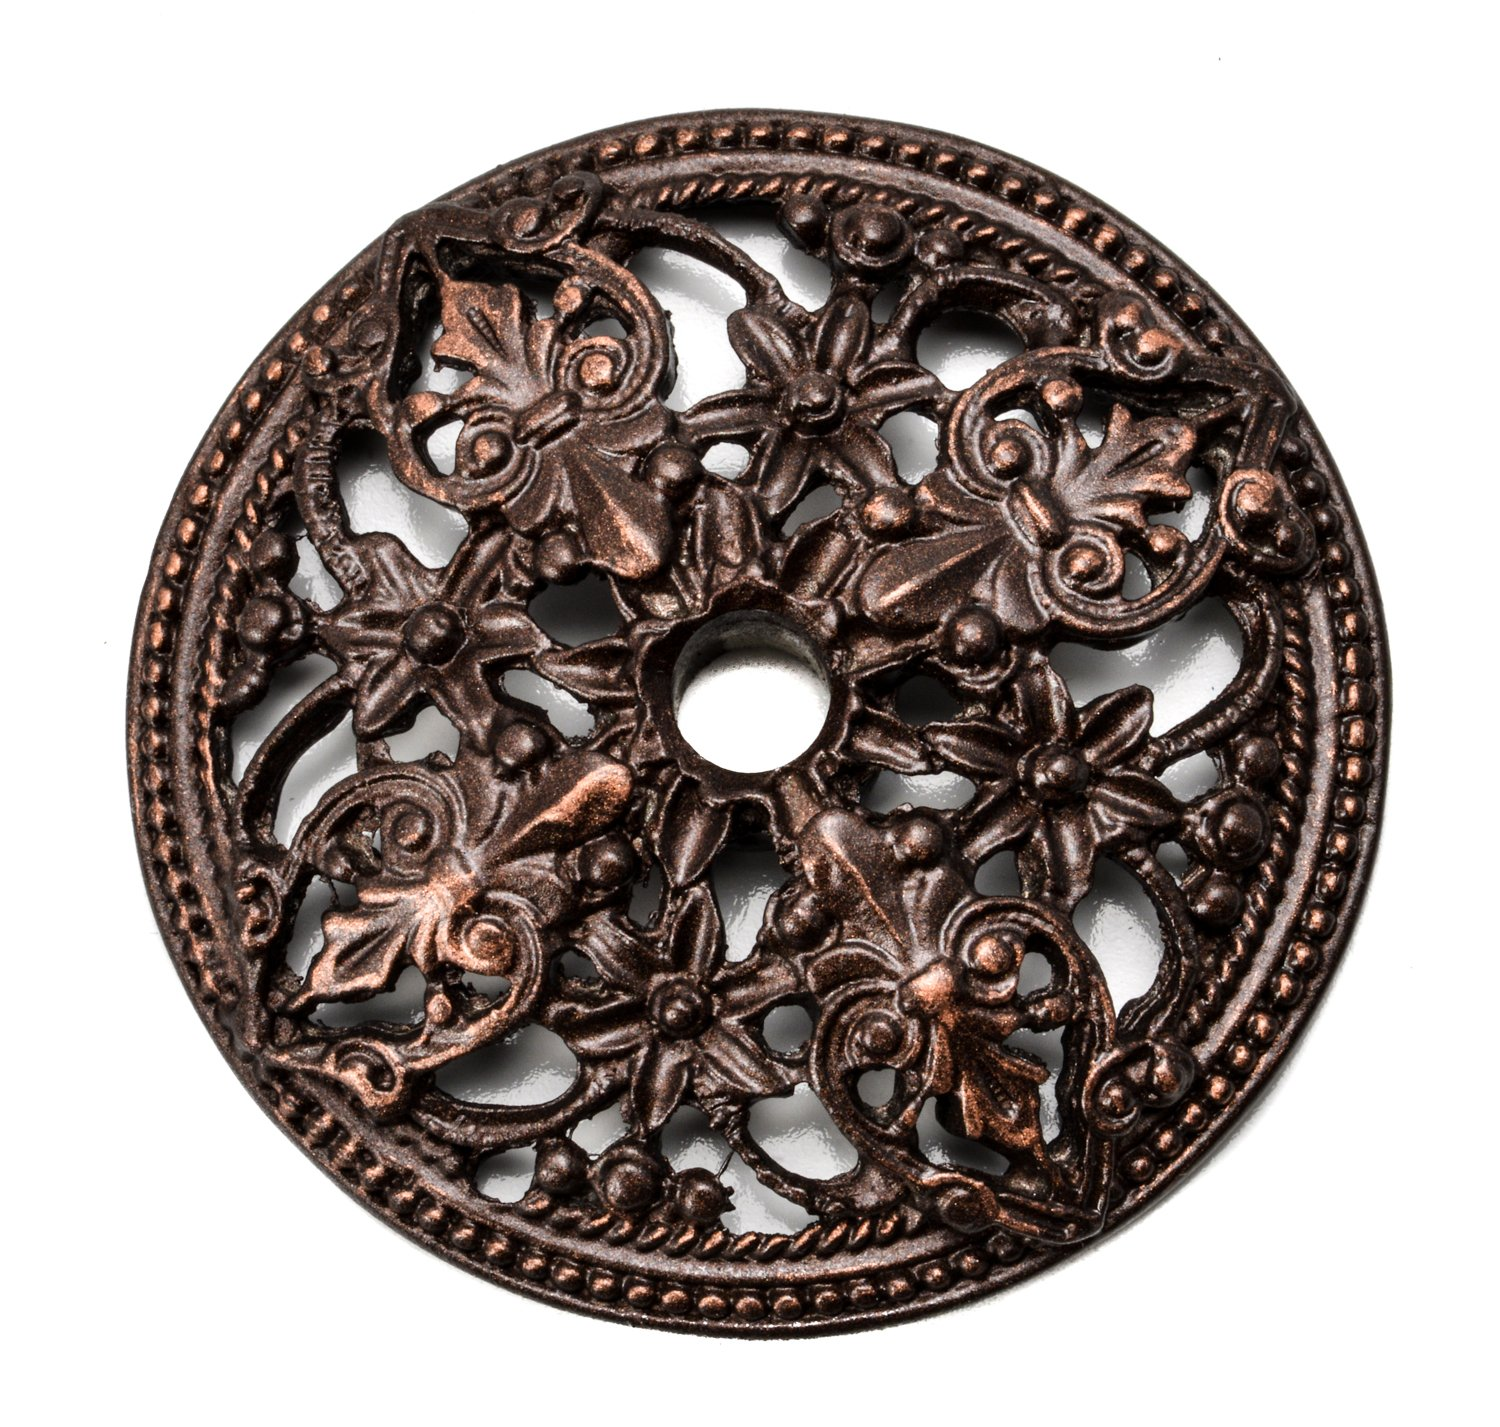 Carpe Diem Hardware 136-22 Juliane Grace Escutcheon with Florets, Oil Rub Bronze by Carpe Diem Hardware